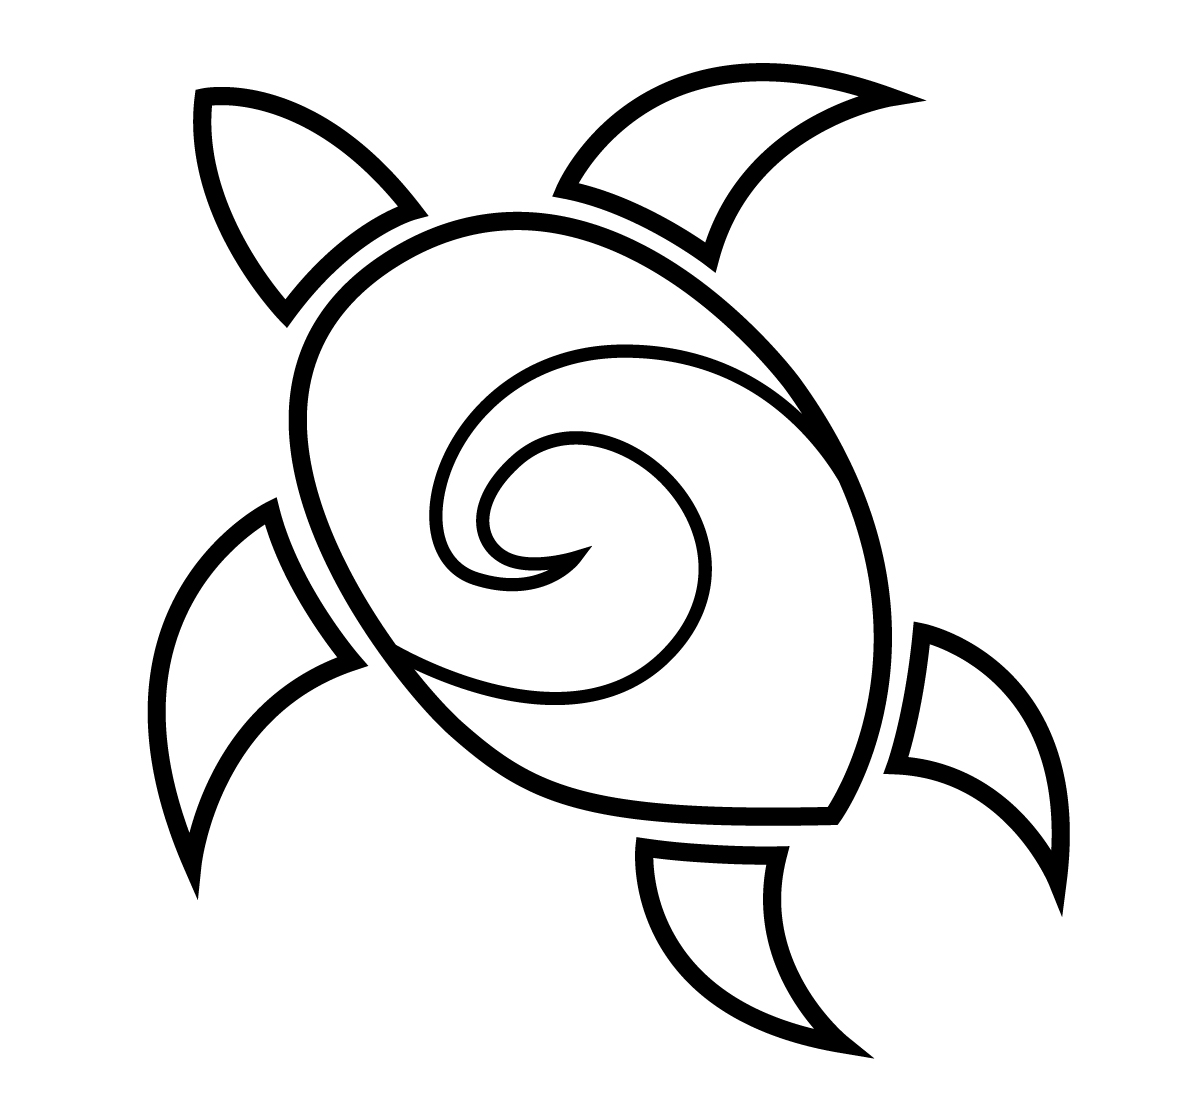 Hosue clipart turtle Search Drawing Simple Pinterest what